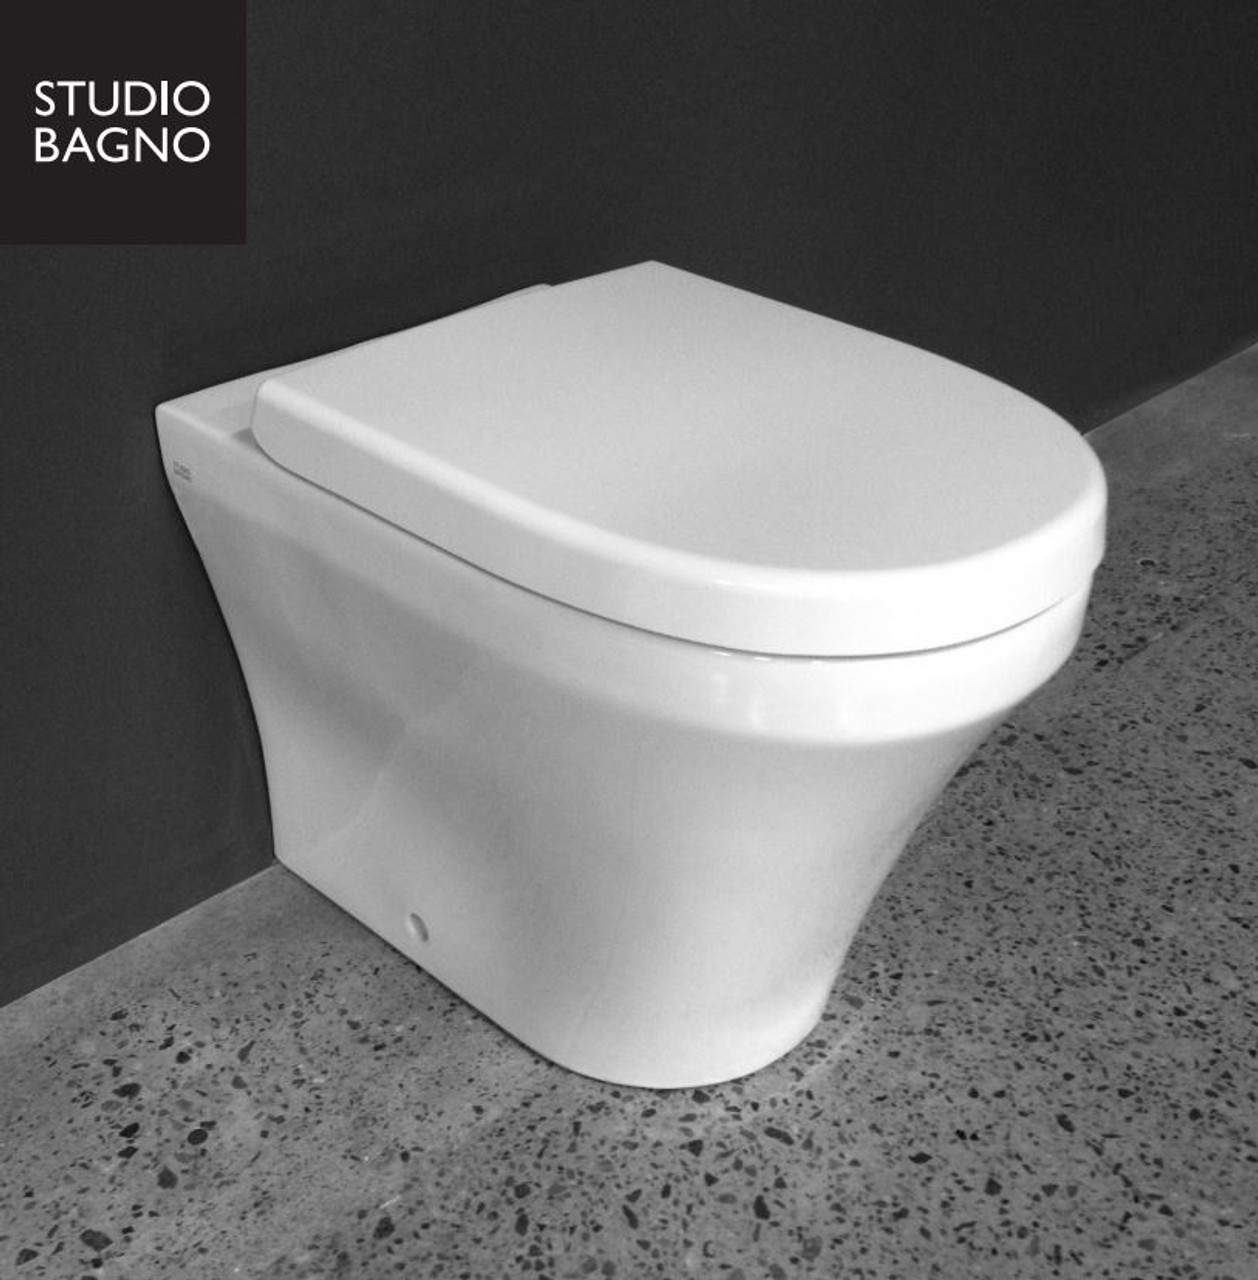 Studio Bagno Q Wall Faced Pan In Wall S Trap Q002